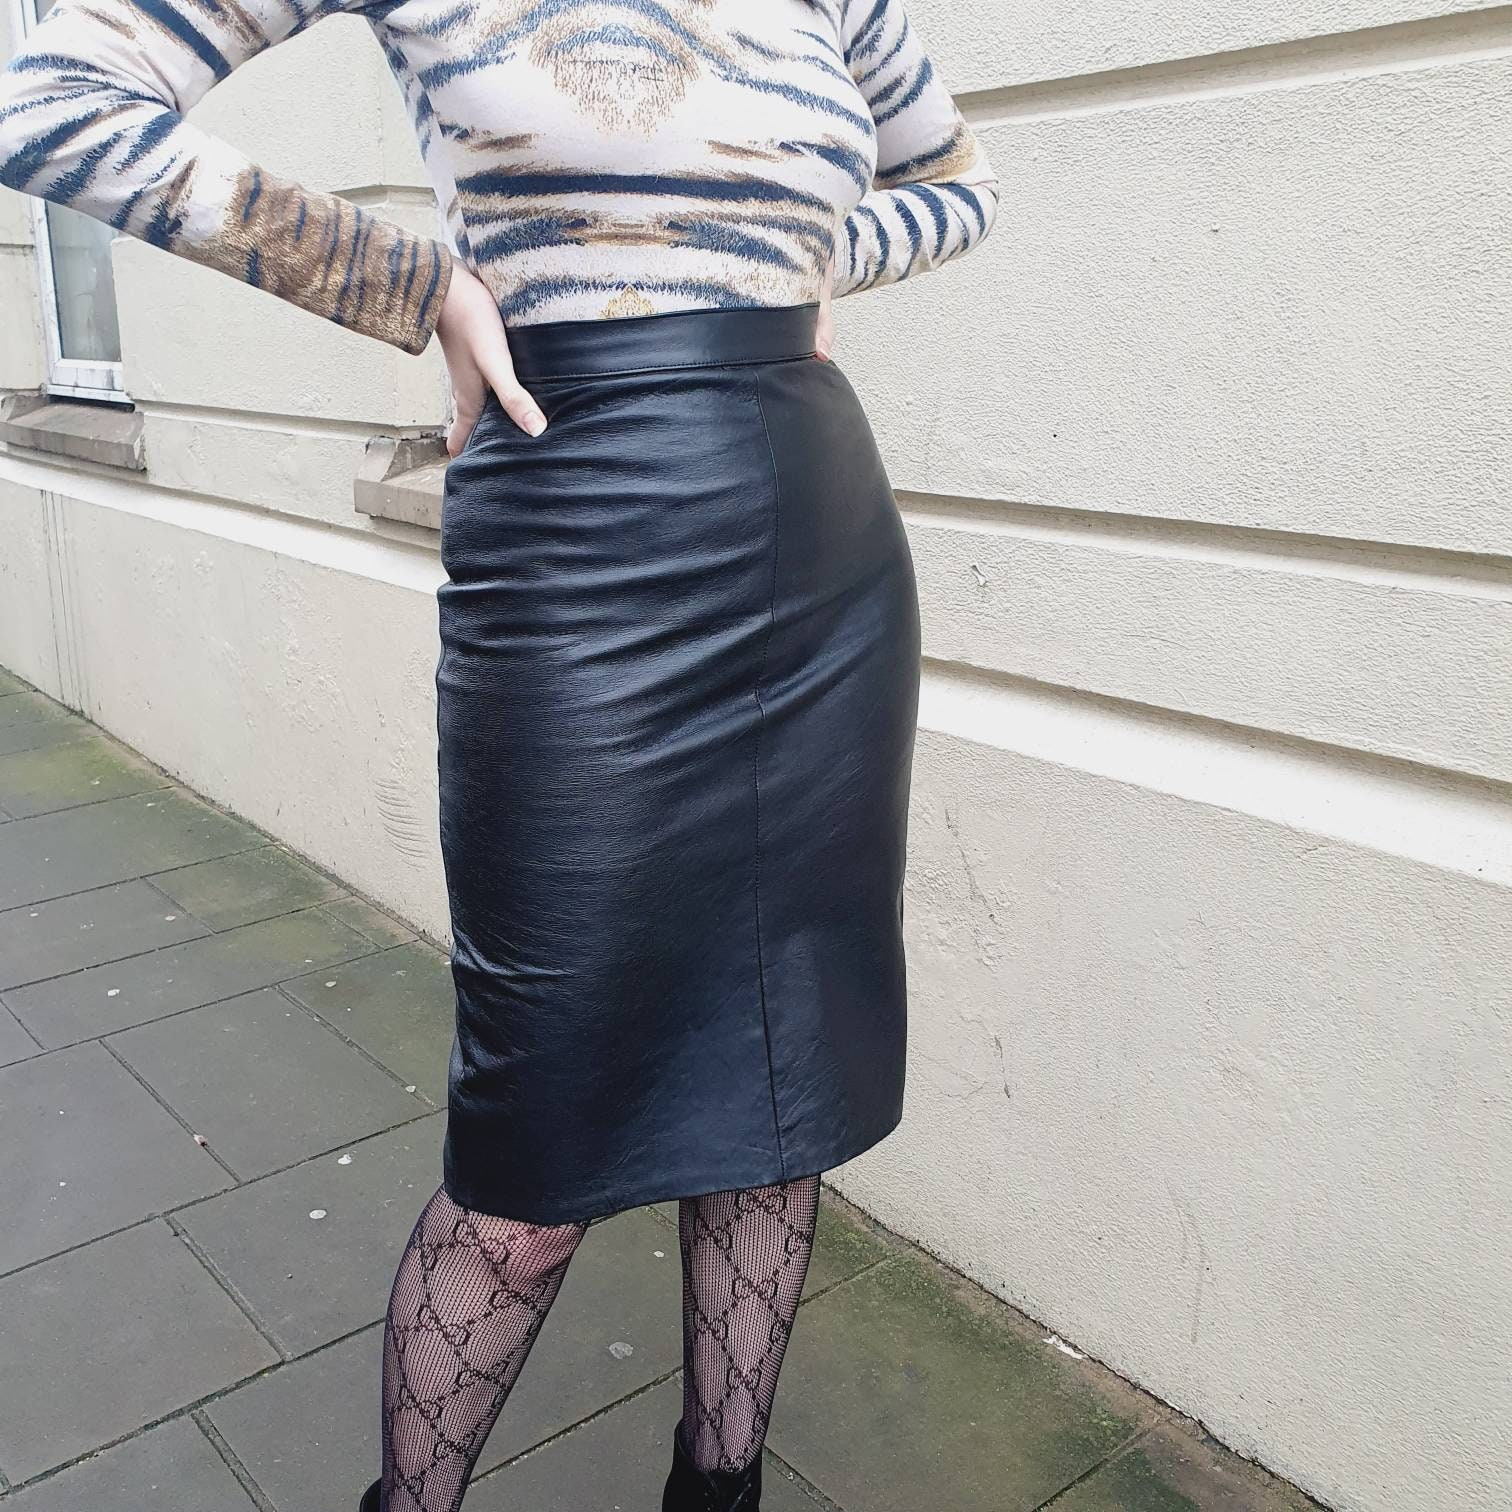 80/'s Vintage Black Leather Pencil Skirt  High Waist Fitted Wiggle Pegged Skirt  Size XSmall  26 inch Waist